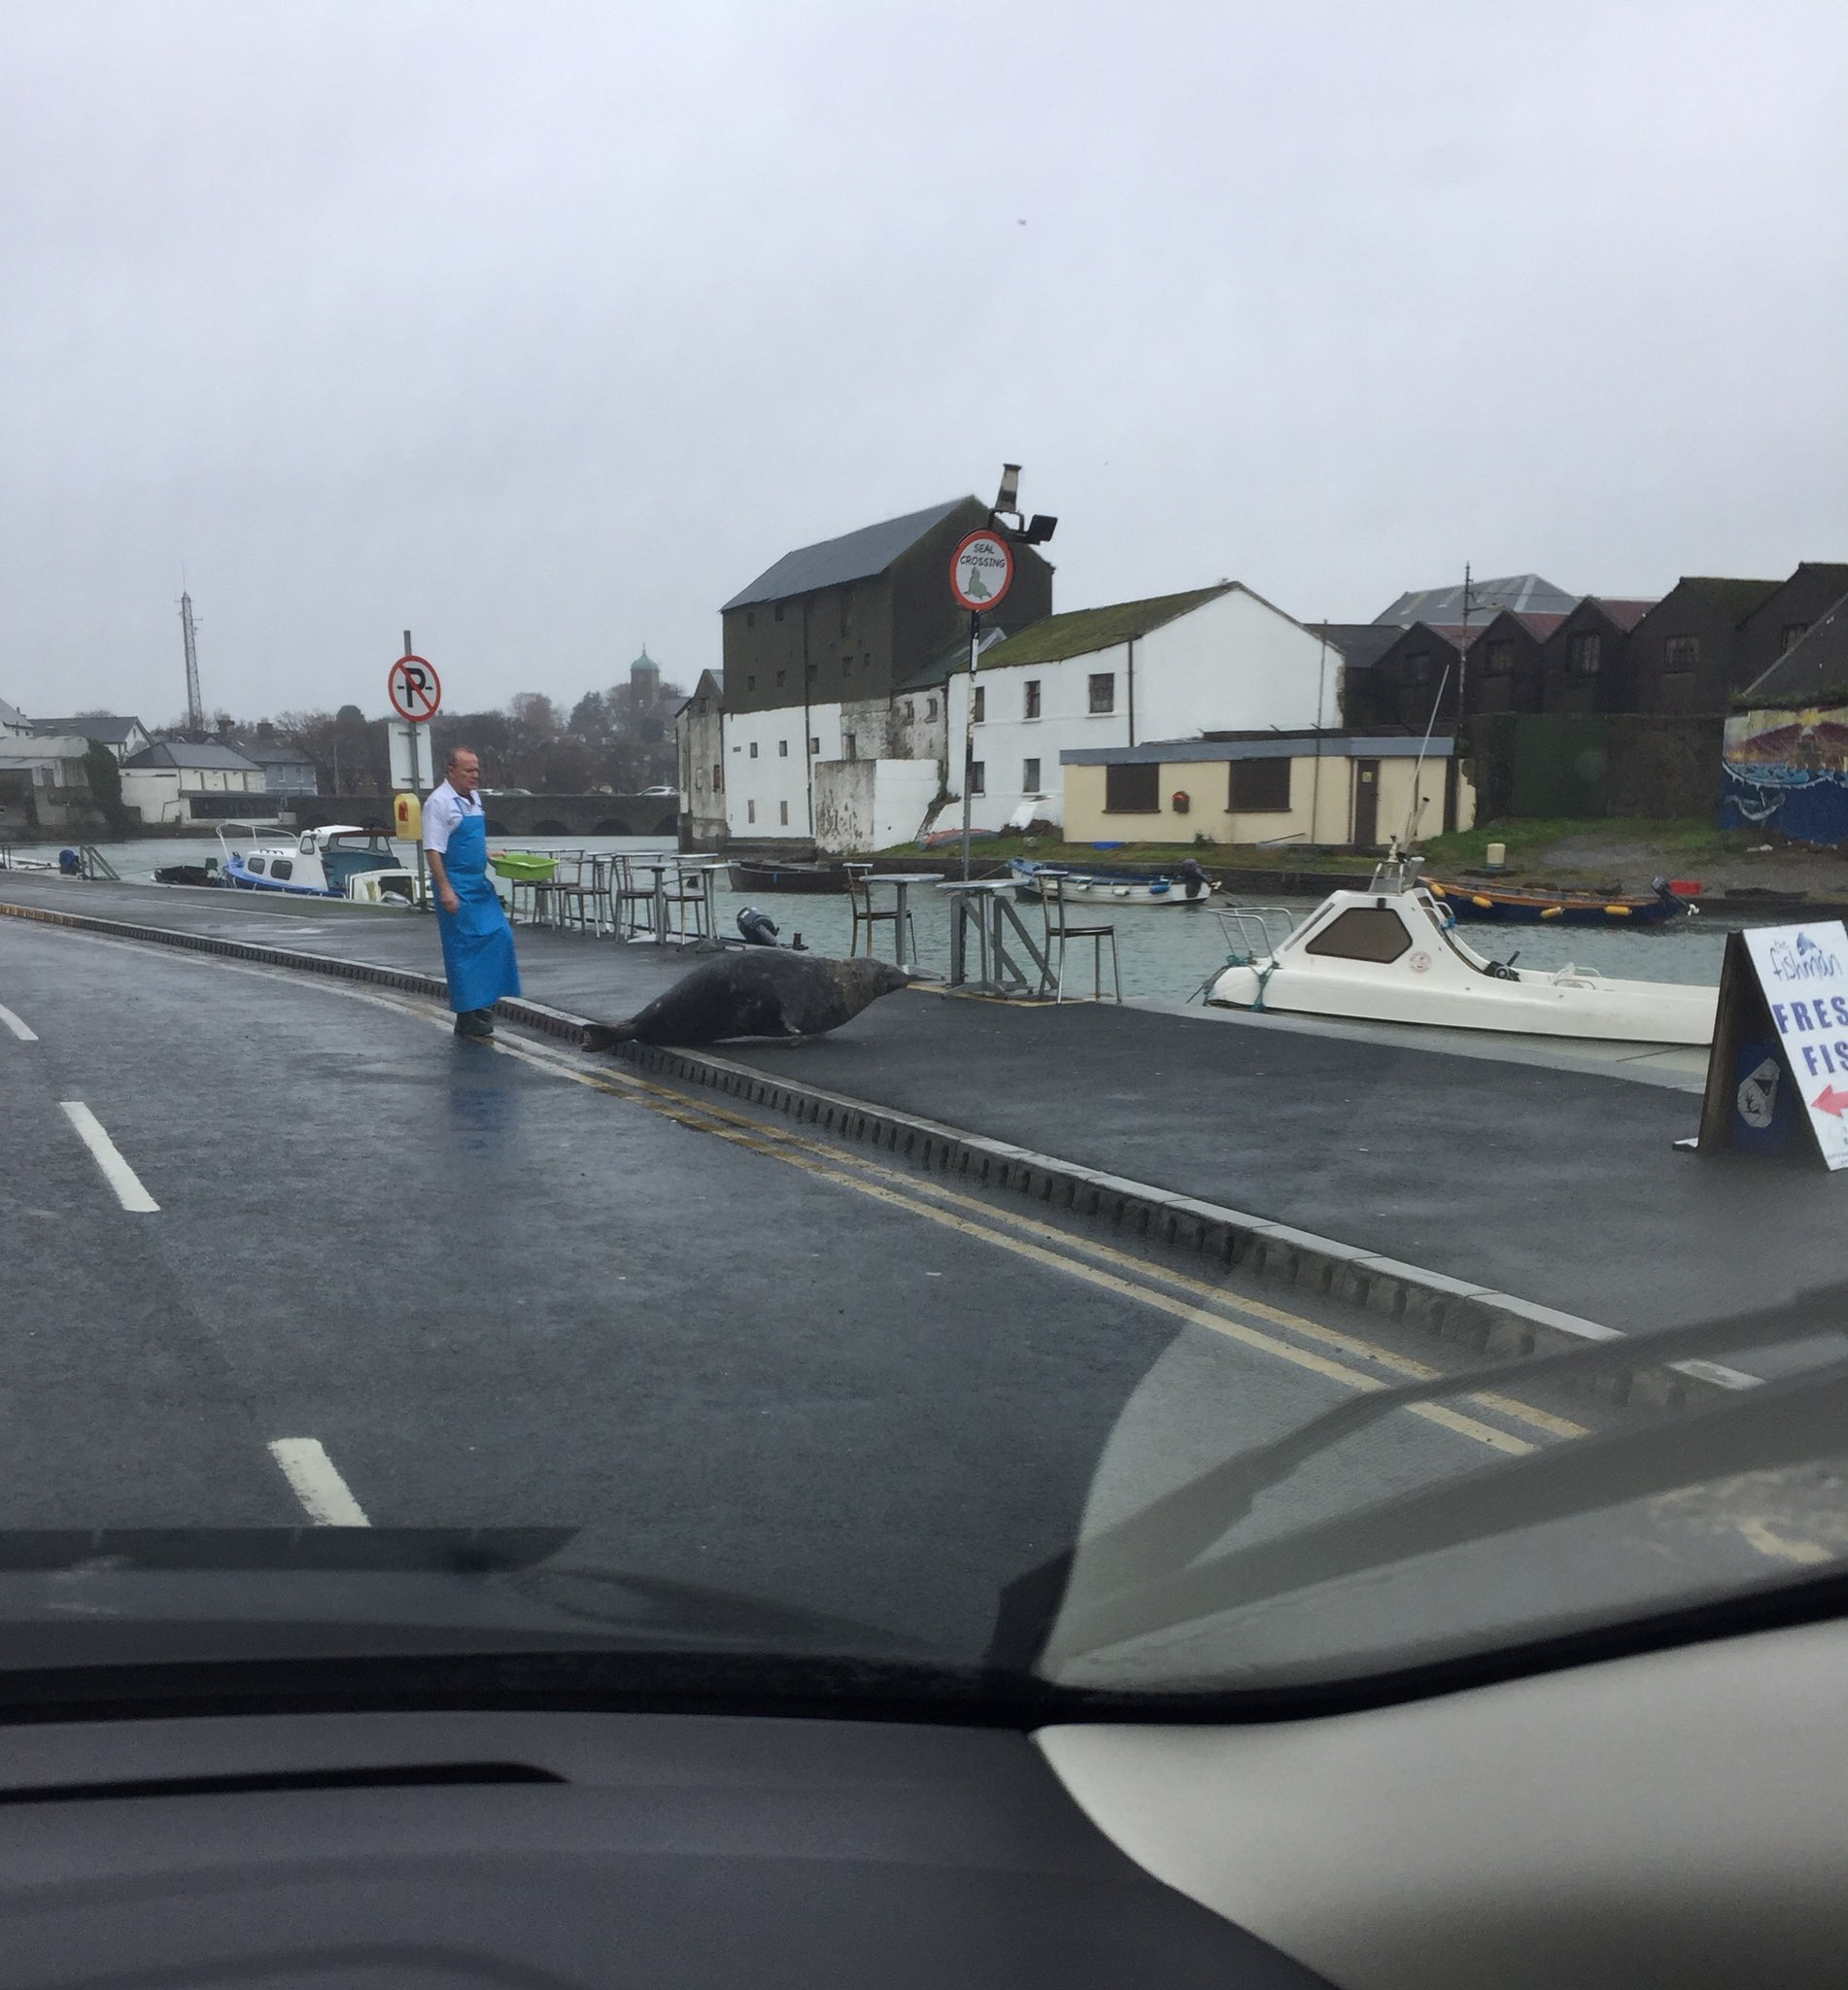 RT @Derek1052: Just witnessed this giant seal being chased out the door of a fishmongers shop in Wicklow town. https://t.co/WGlGxlAWfs